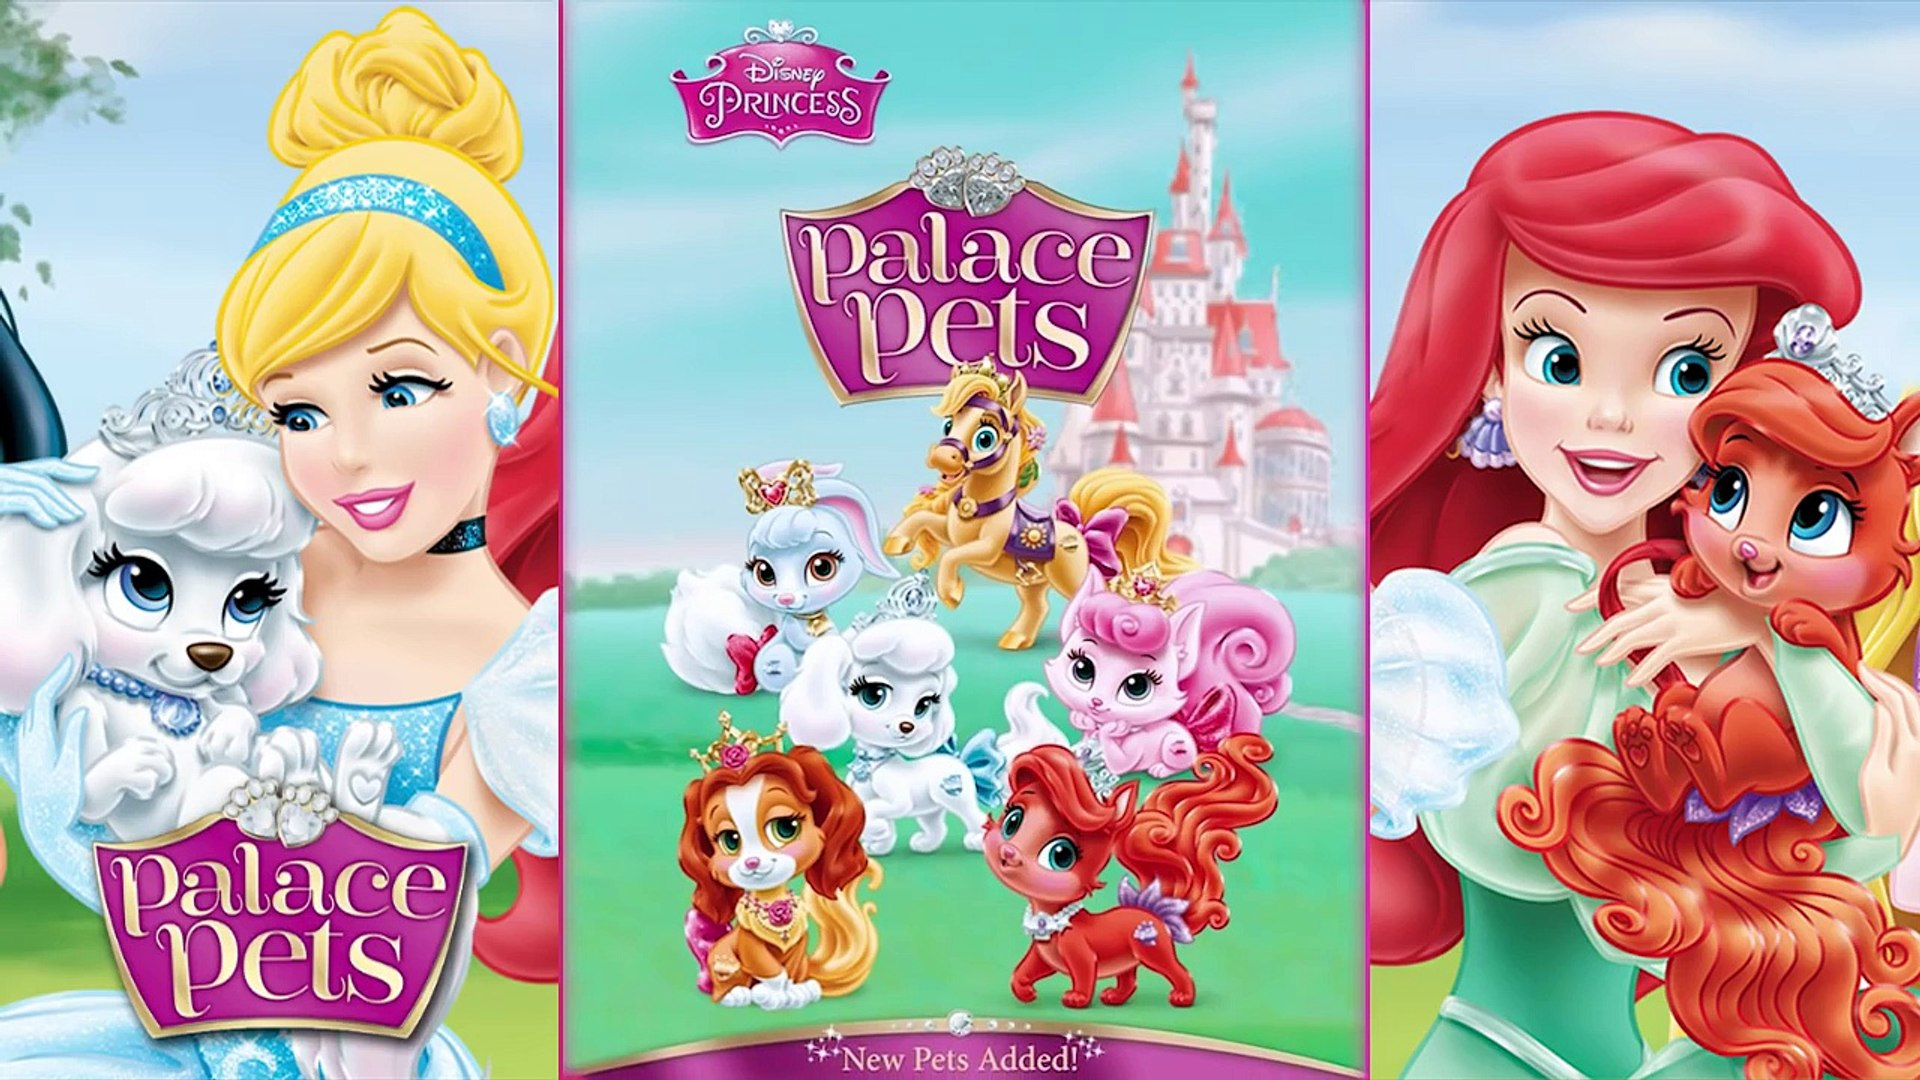 ♥ Disney Princess Palace Pets - Rapunzel & Gleam NEW PET (Princess Palace Pets Game for Children